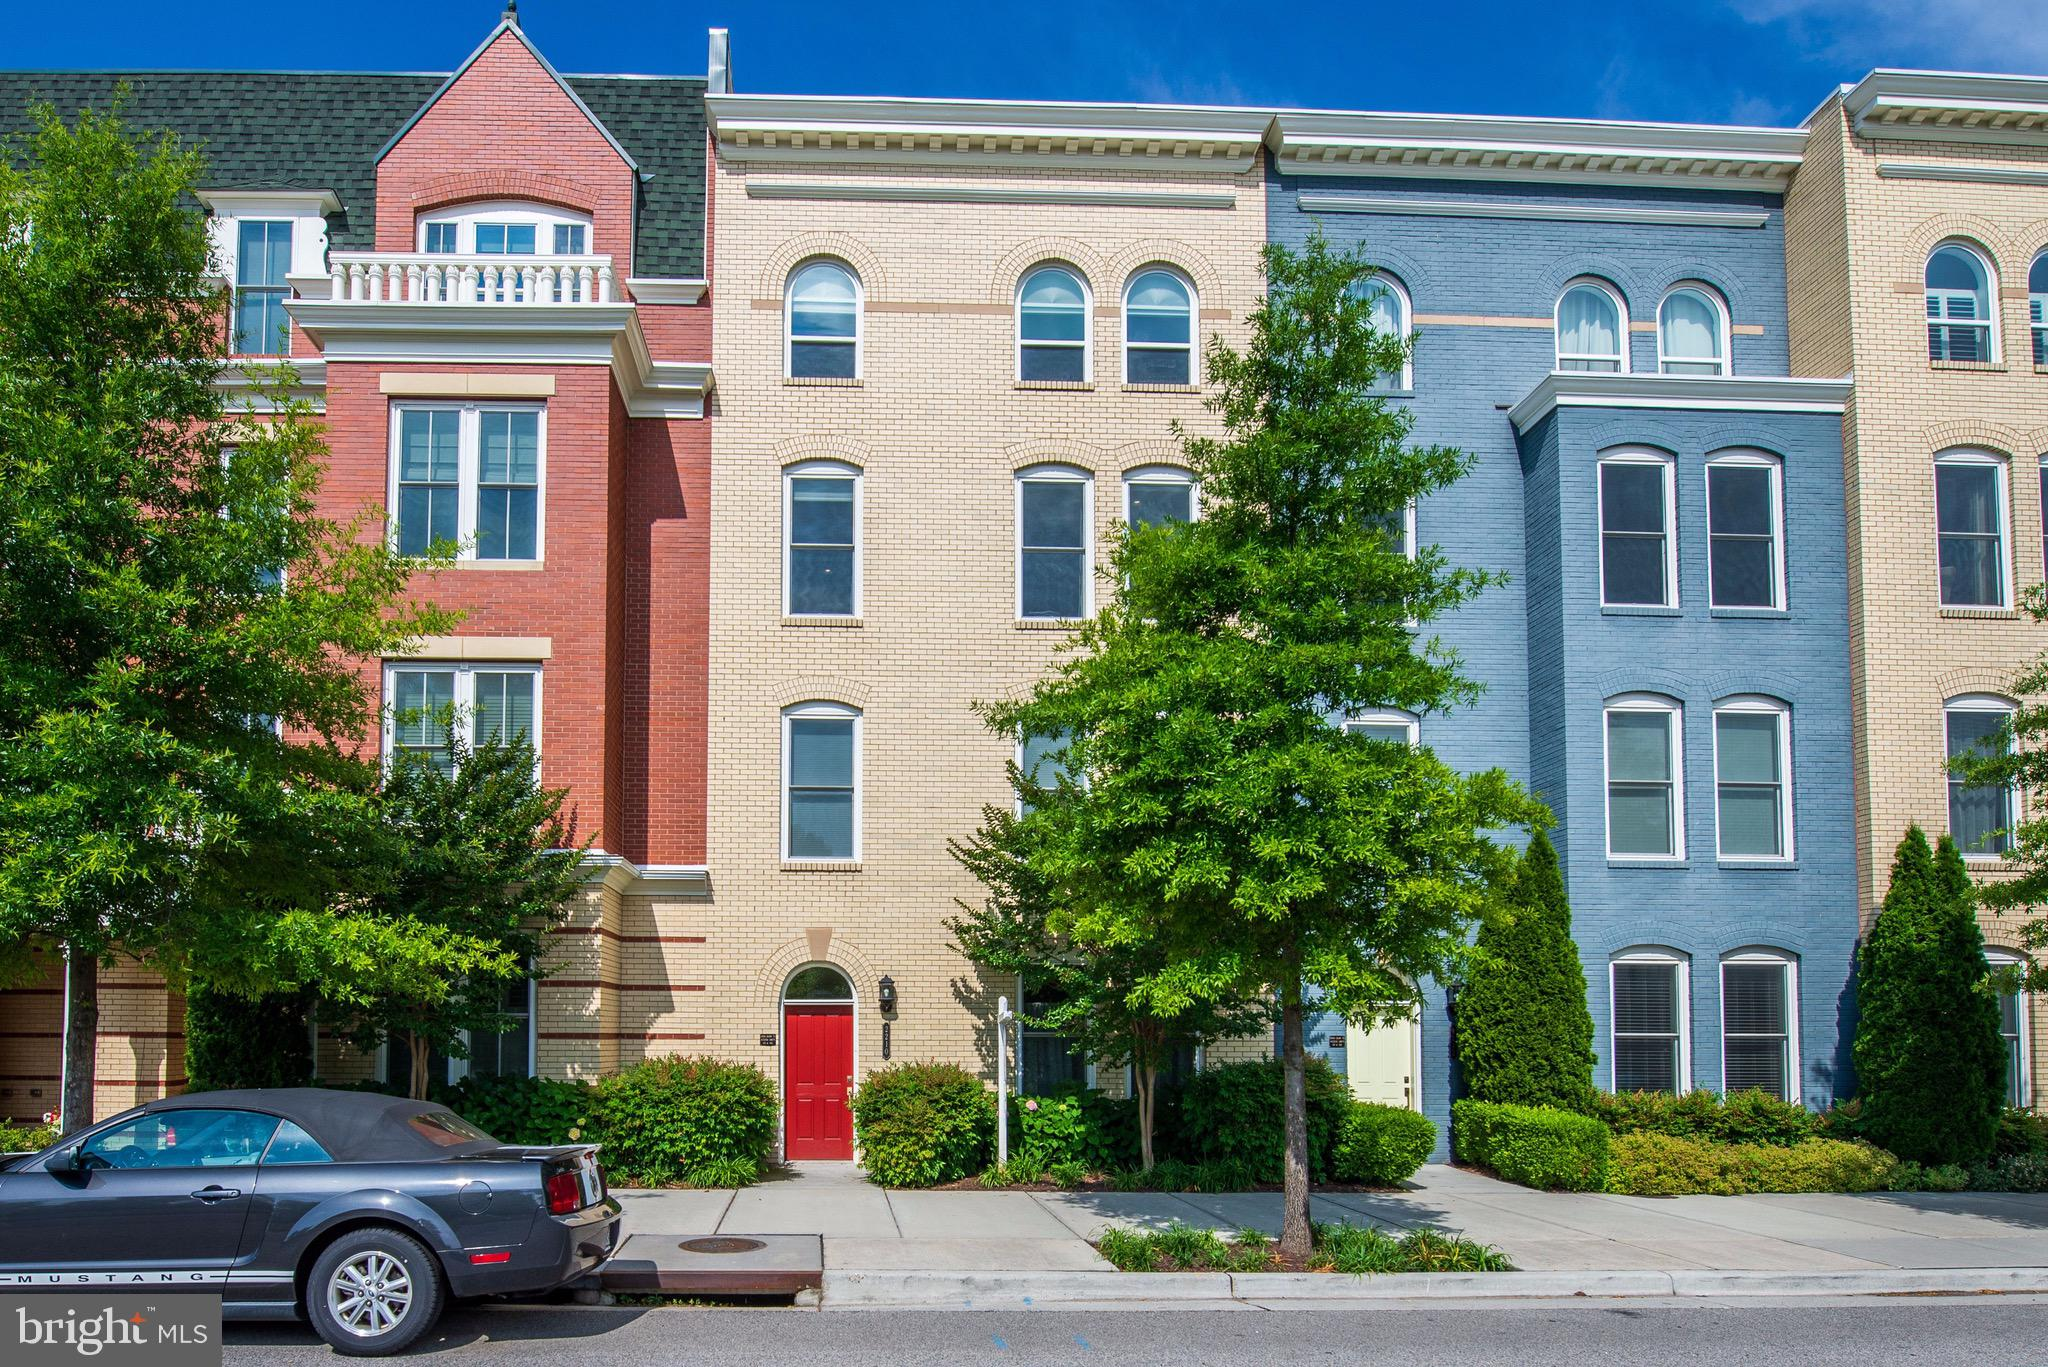 LARGEST UPPER LEVEL FLOOR PLAN AT POTOMAC YARDS.  3 BED PLUS HUGE DEN!! EVERY DEVELOPER OPTION-WARM HARDWOOD FLOORS ON BOTH FLOORS- 2 SIDED FIREPLACE, BARELY LIVED IN.  WALK TO METRO AND CRYSTAL CITY. GARAGE AND PARKING FOR 2 CARS.